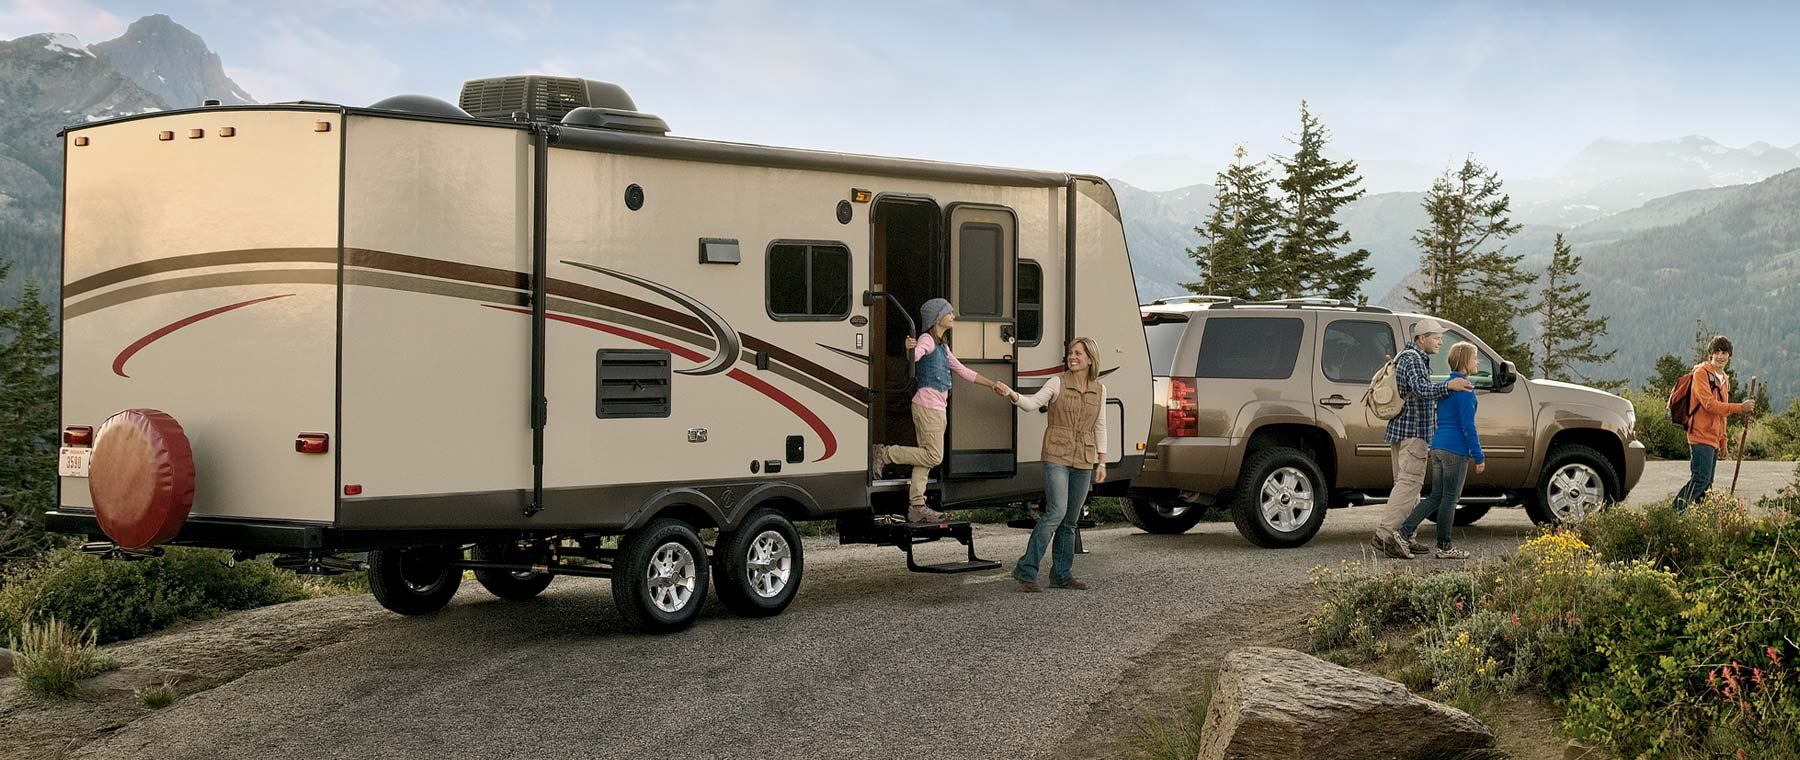 Travel trailers and towable rvs for Motor homes to rent